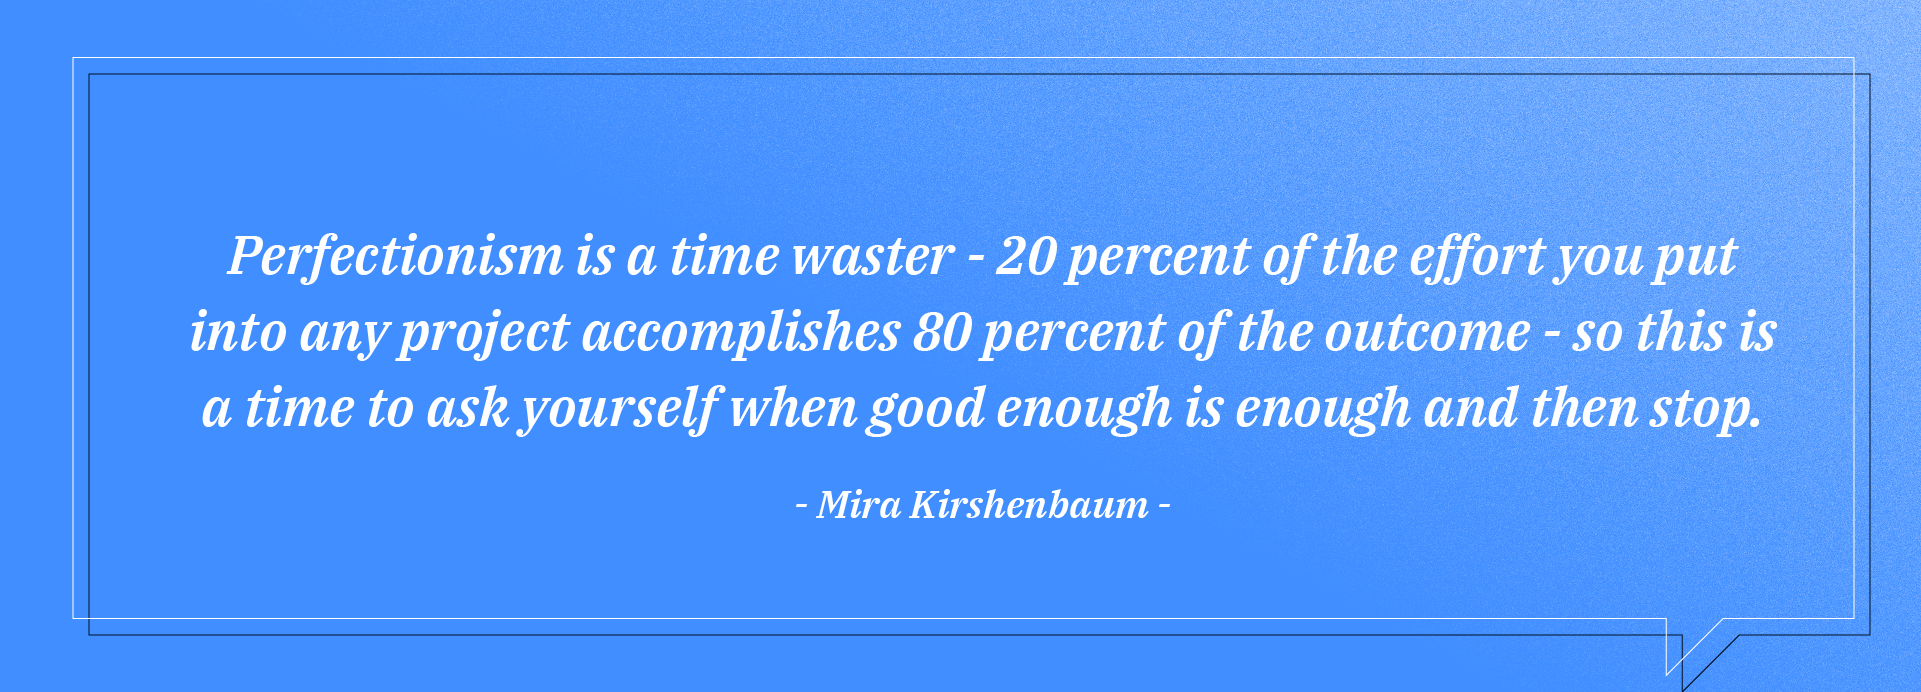 If you have it 98% correct, no need to go back to it and strive to make it 100%. Perfectionism is another time waster at work. It can come in the guise of efficiency but it's more like spending a whole lot more hours just to make an insignificant difference.